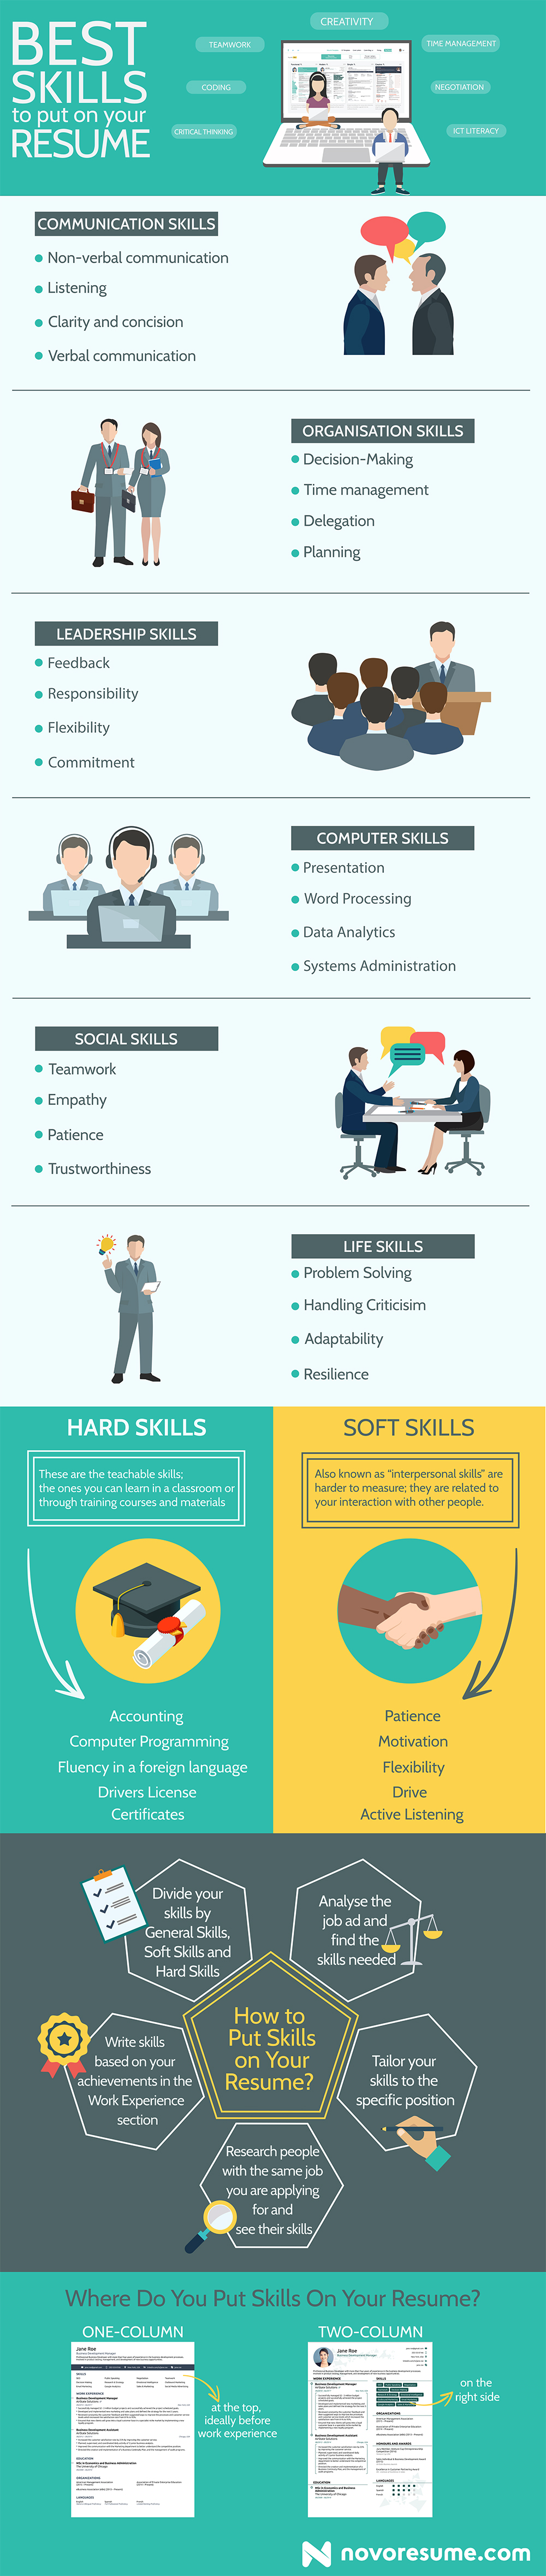 these are the best skills to include in your resume ladders